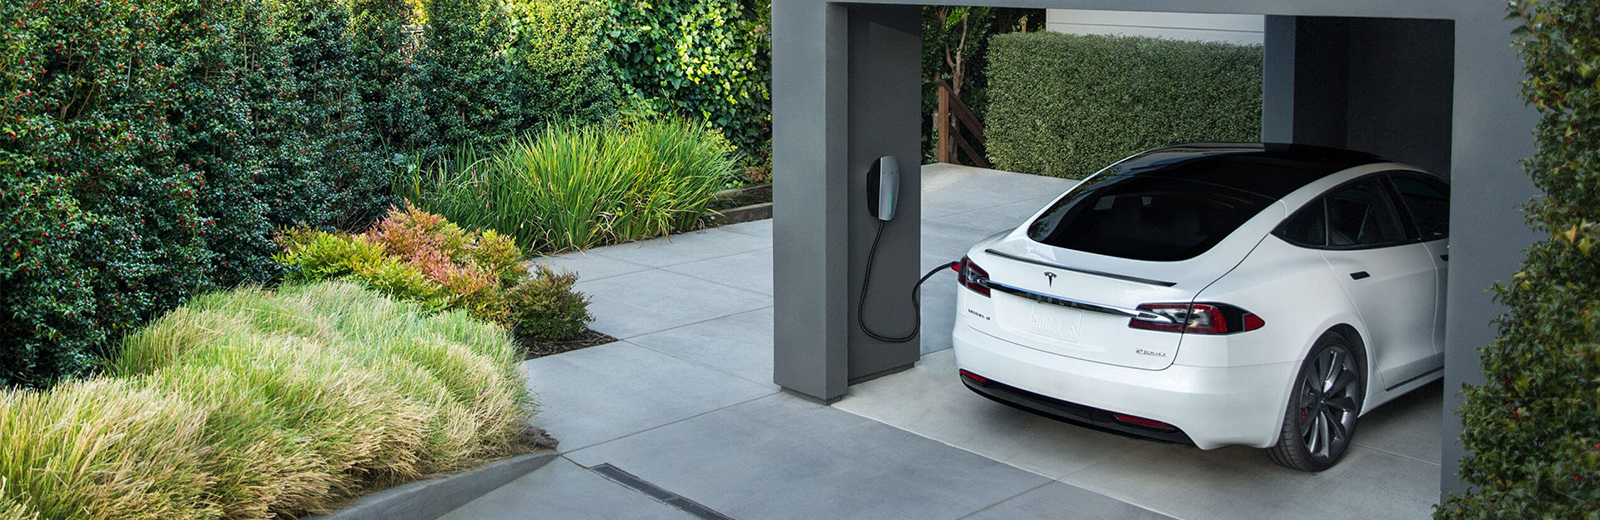 Moving EV charger